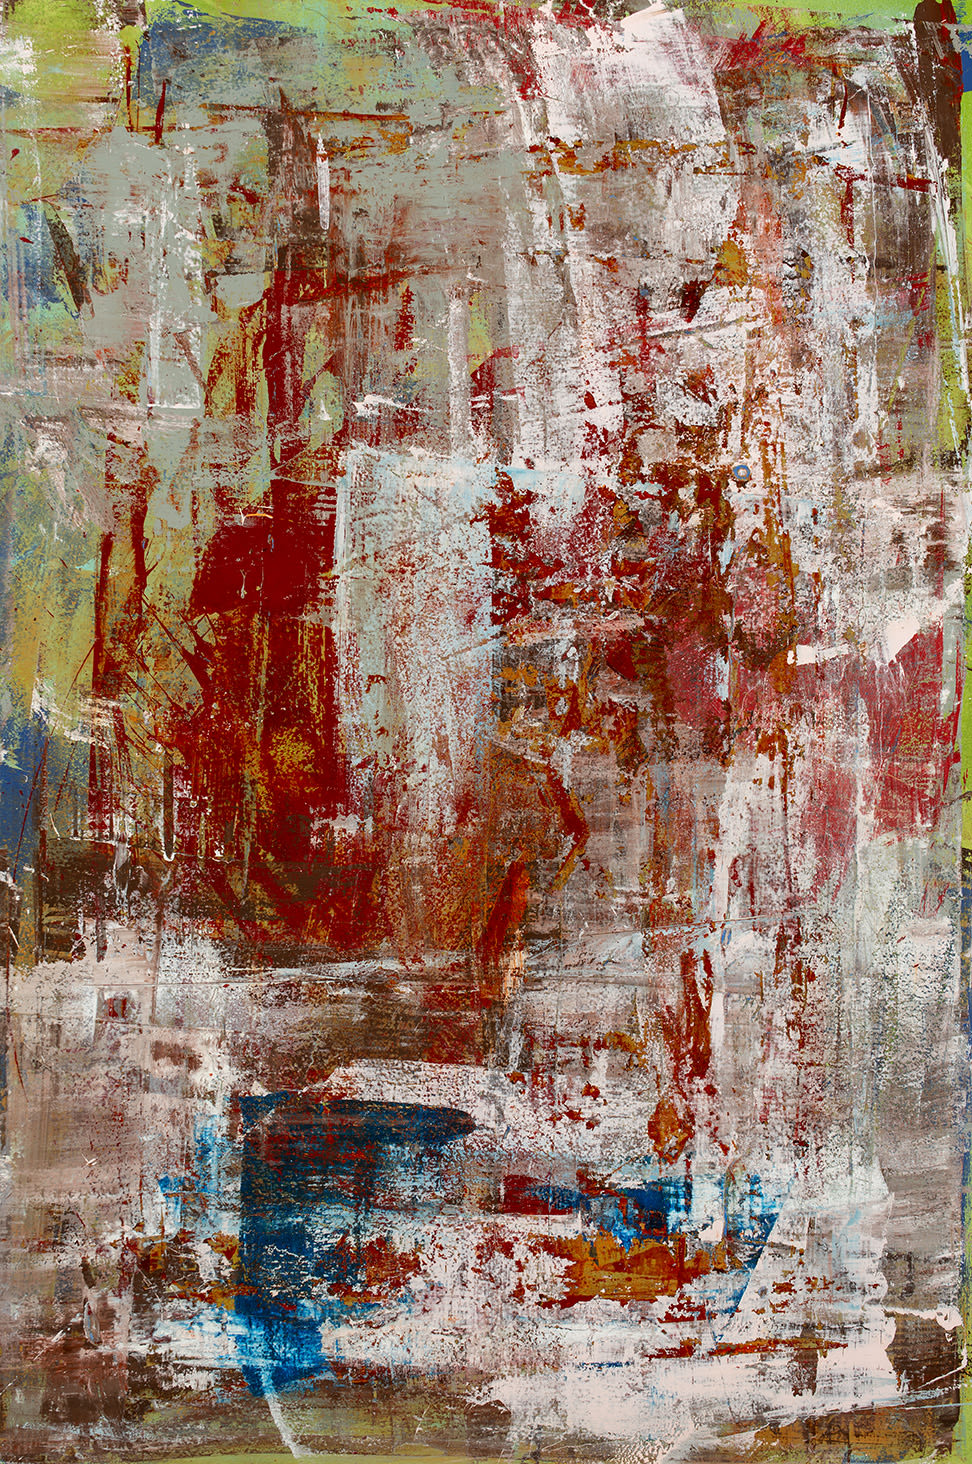 """<span class=""""link fancybox-details-link""""><a href=""""/artworks/categories/5/1873-emilio-diiorio-untitled-6-of-6-in-series-2017/"""">View Detail Page</a></span><div class=""""artist""""><strong>Emilio DiIorio</strong></div> <div class=""""title""""><em>Untitled (6 of 6 in series)</em>, 2017</div> <div class=""""medium"""">Acrylic on panel</div> <div class=""""dimensions"""">48 x 32 in<br /> 121.9 x 81.3 cm</div>"""